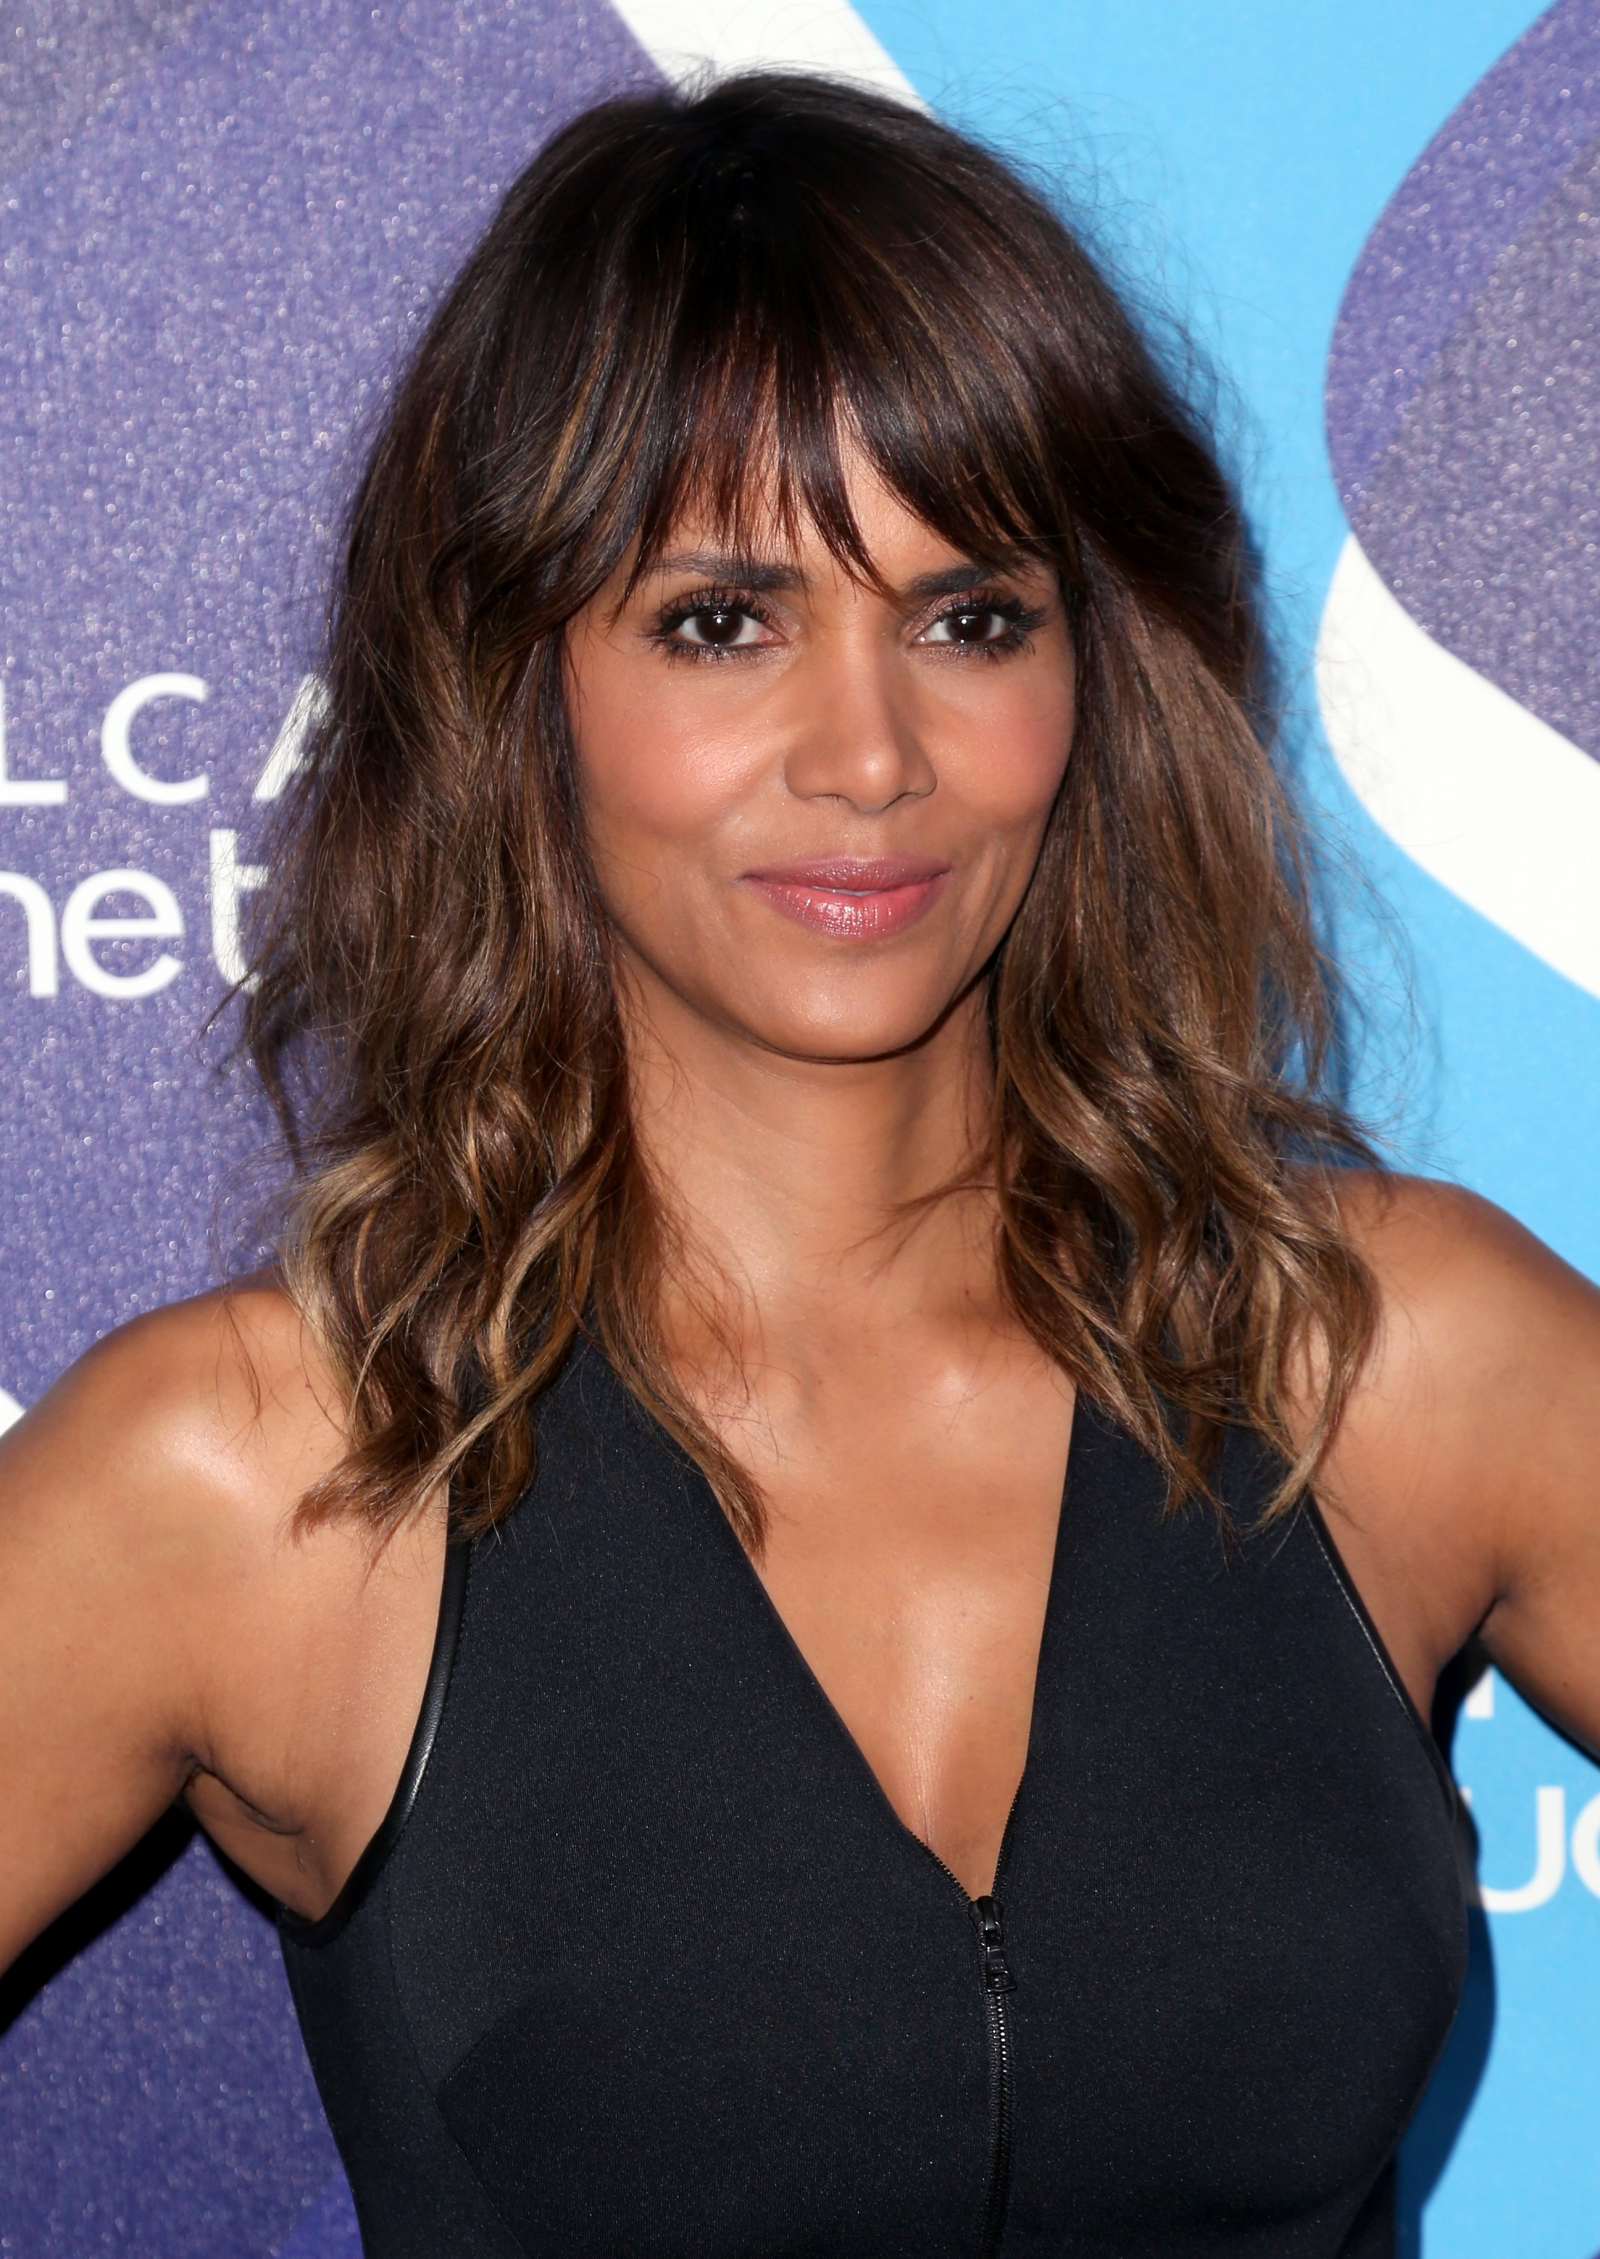 Fake Nude Photo Of Halle Berry Surfaces After Actress -8896